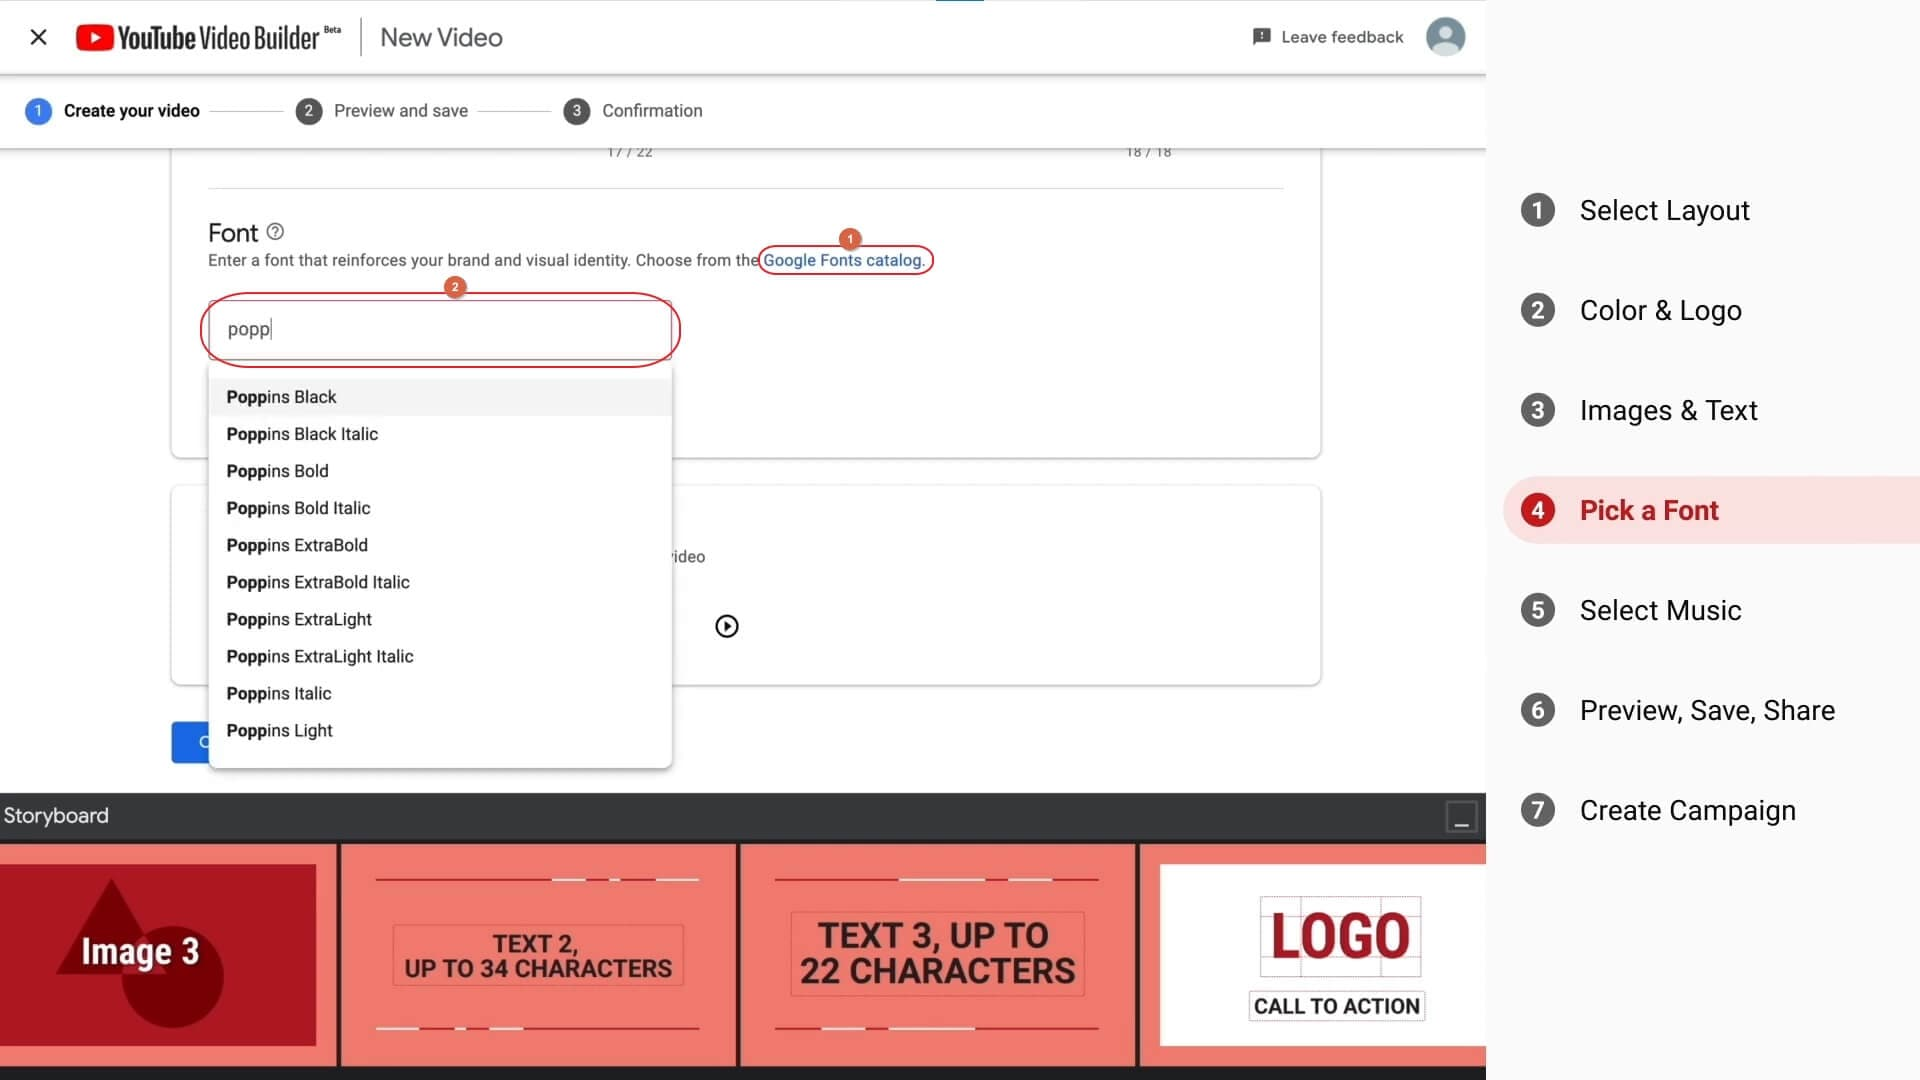 Create video with YouTube Video Builder - change font